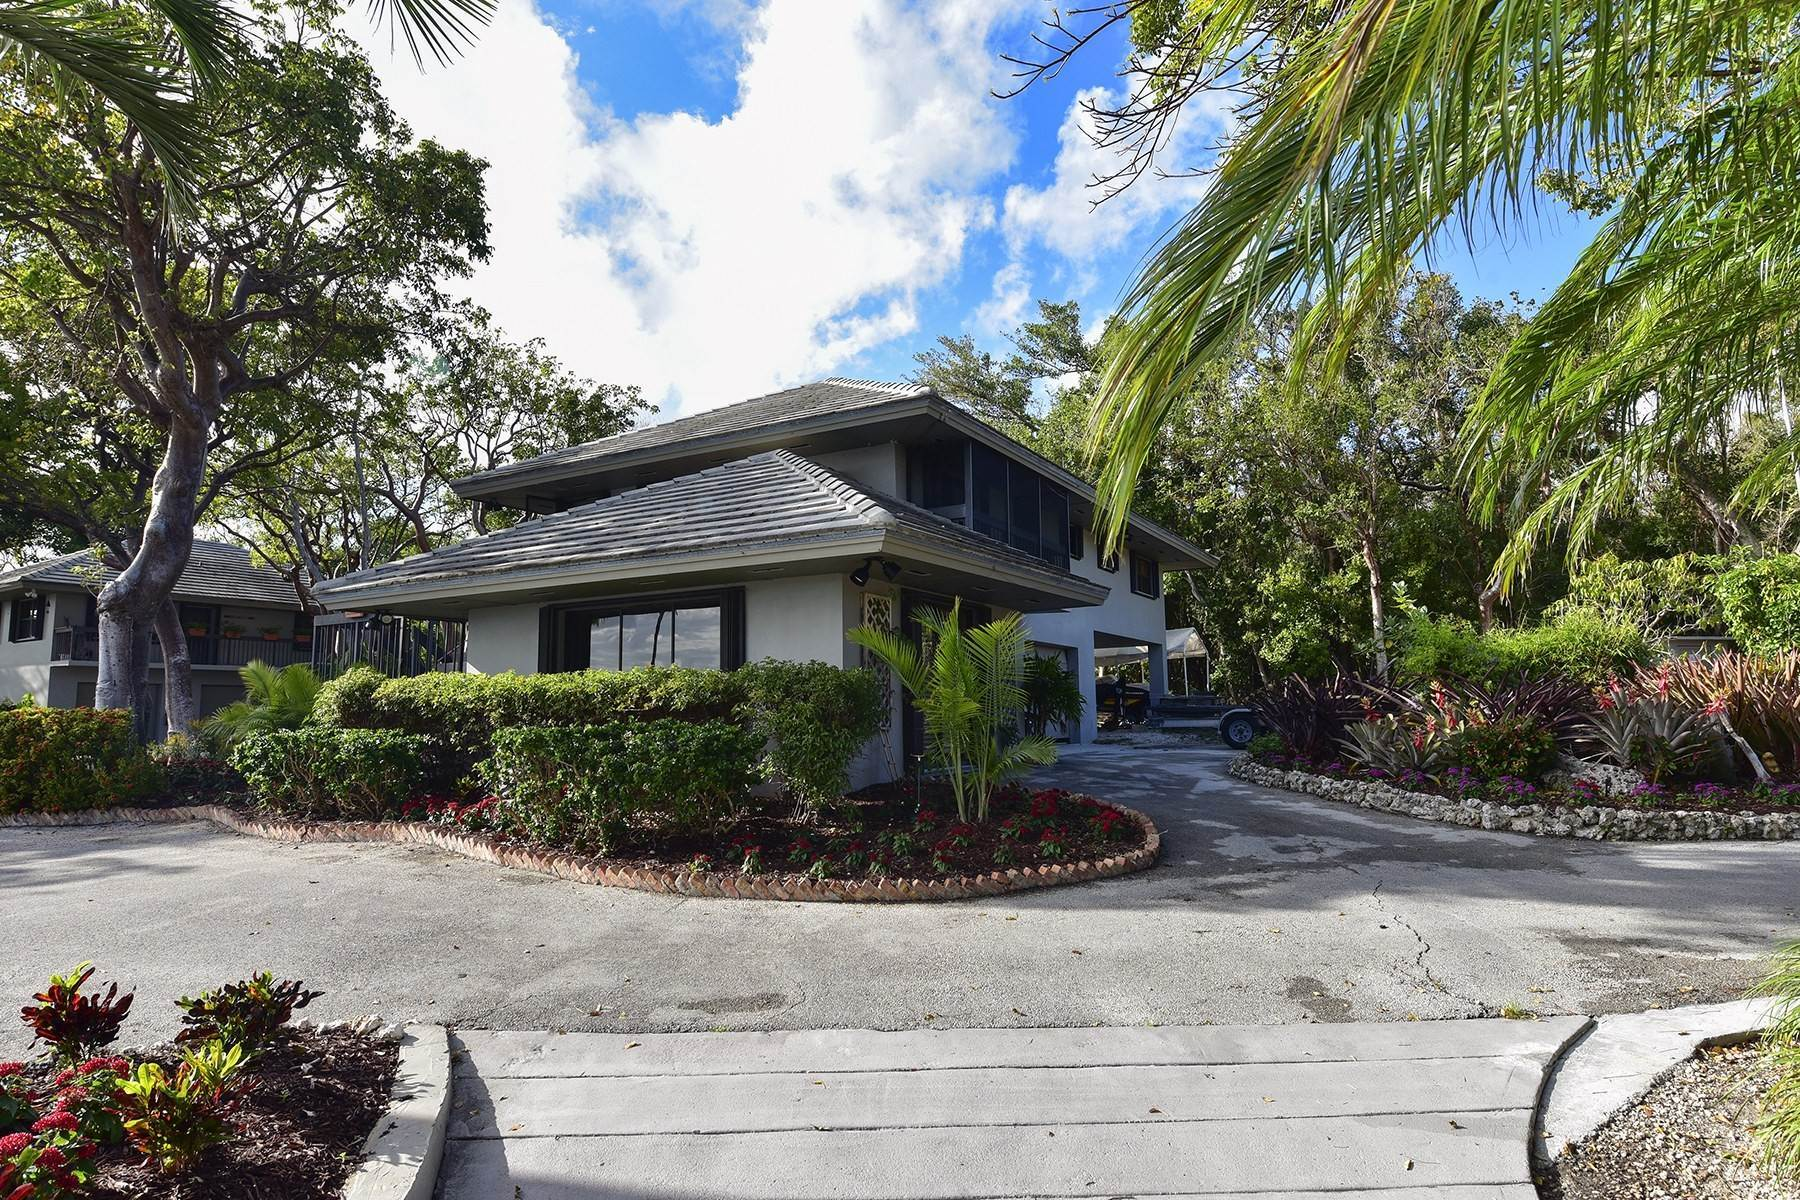 20. Property for Sale at Pumpkin Key - Private Island, Key Largo, FL Pumpkin Key - Private Island Key Largo, Florida 33037 United States